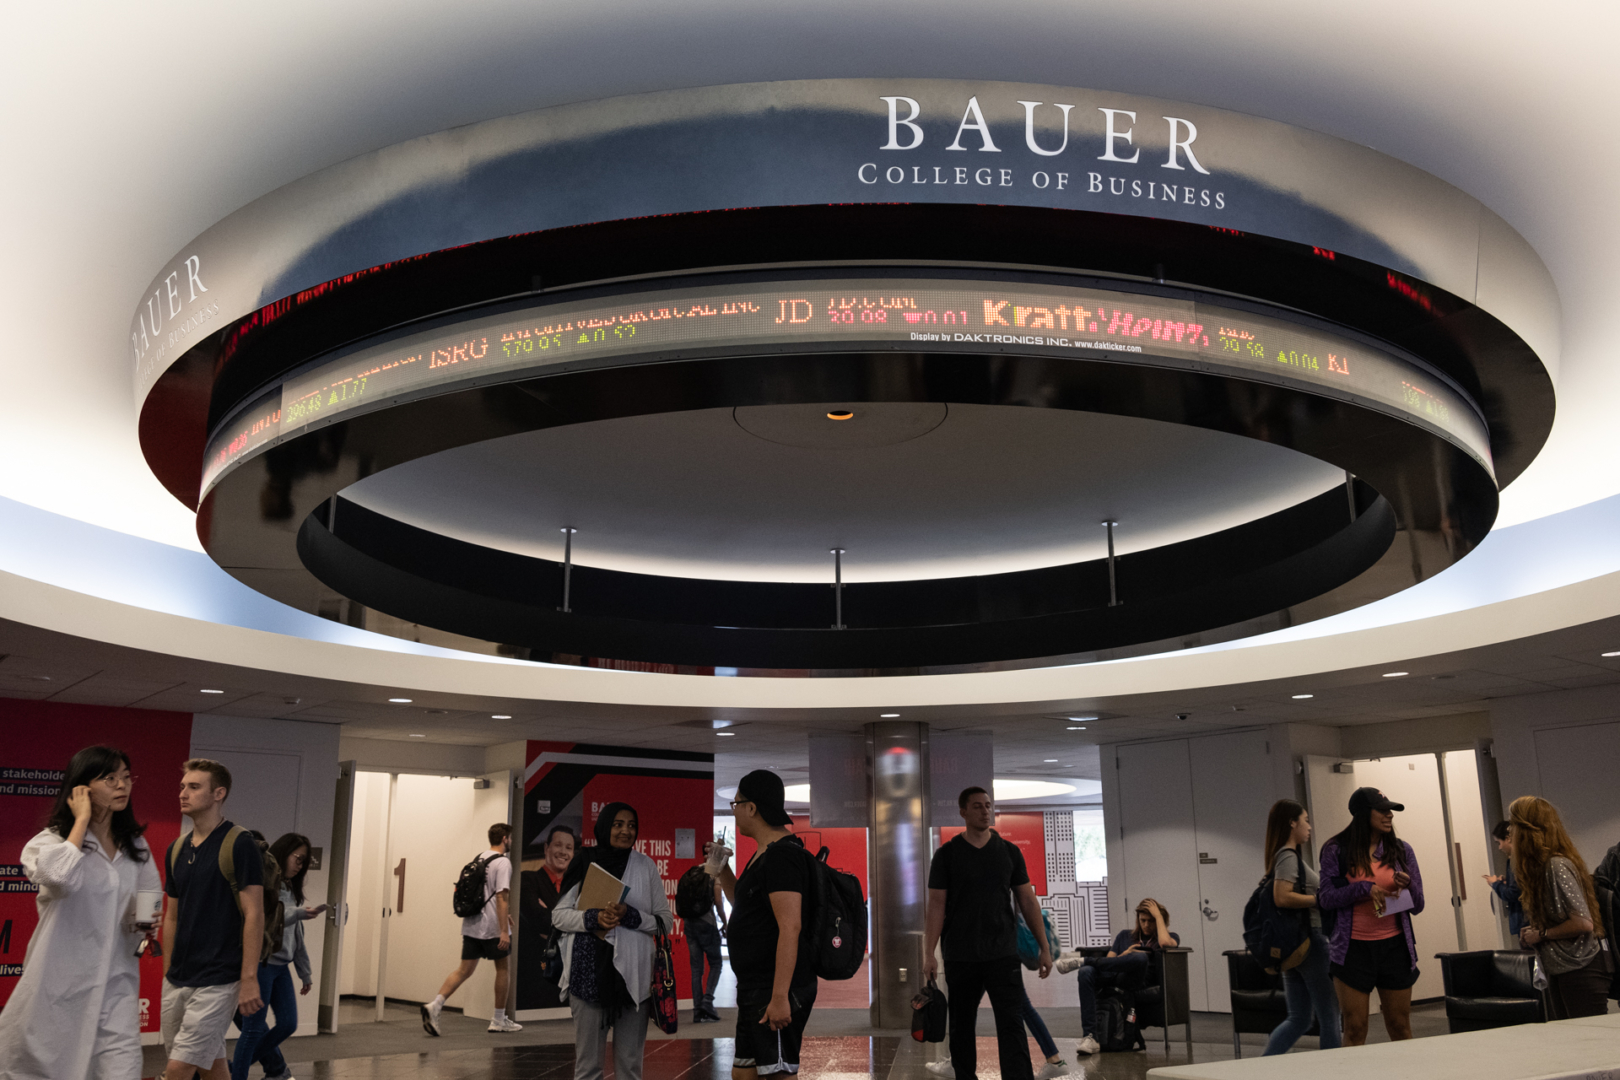 There were over 120 applicants to The Bauer Sales Academy, but only 30 were admitted.